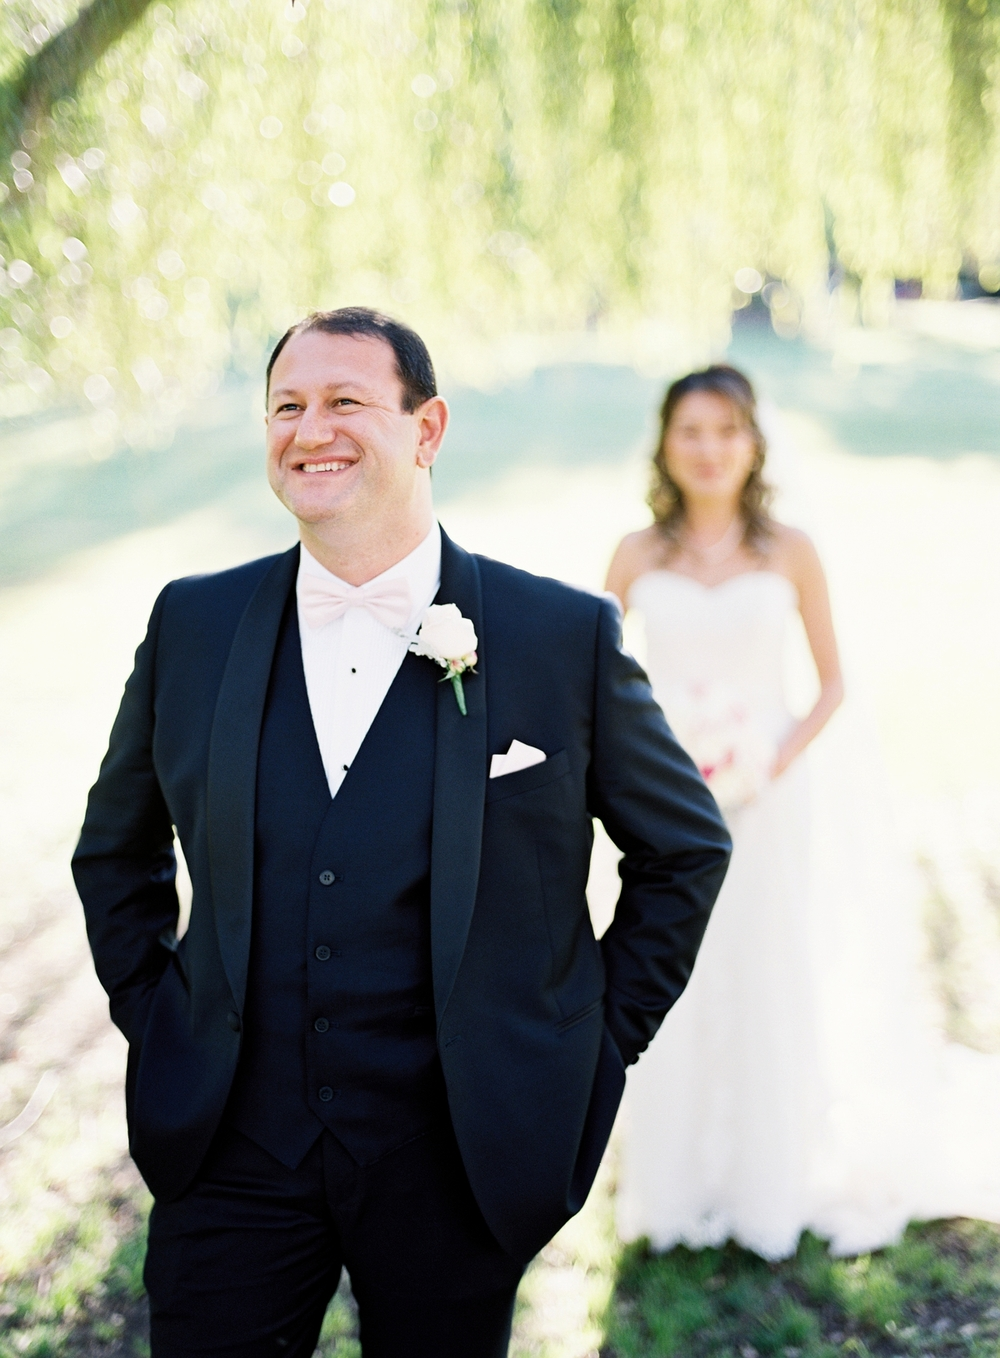 The Vine Grove Mudgee Wedding, Photography by Mr Edwards_1969.jpg